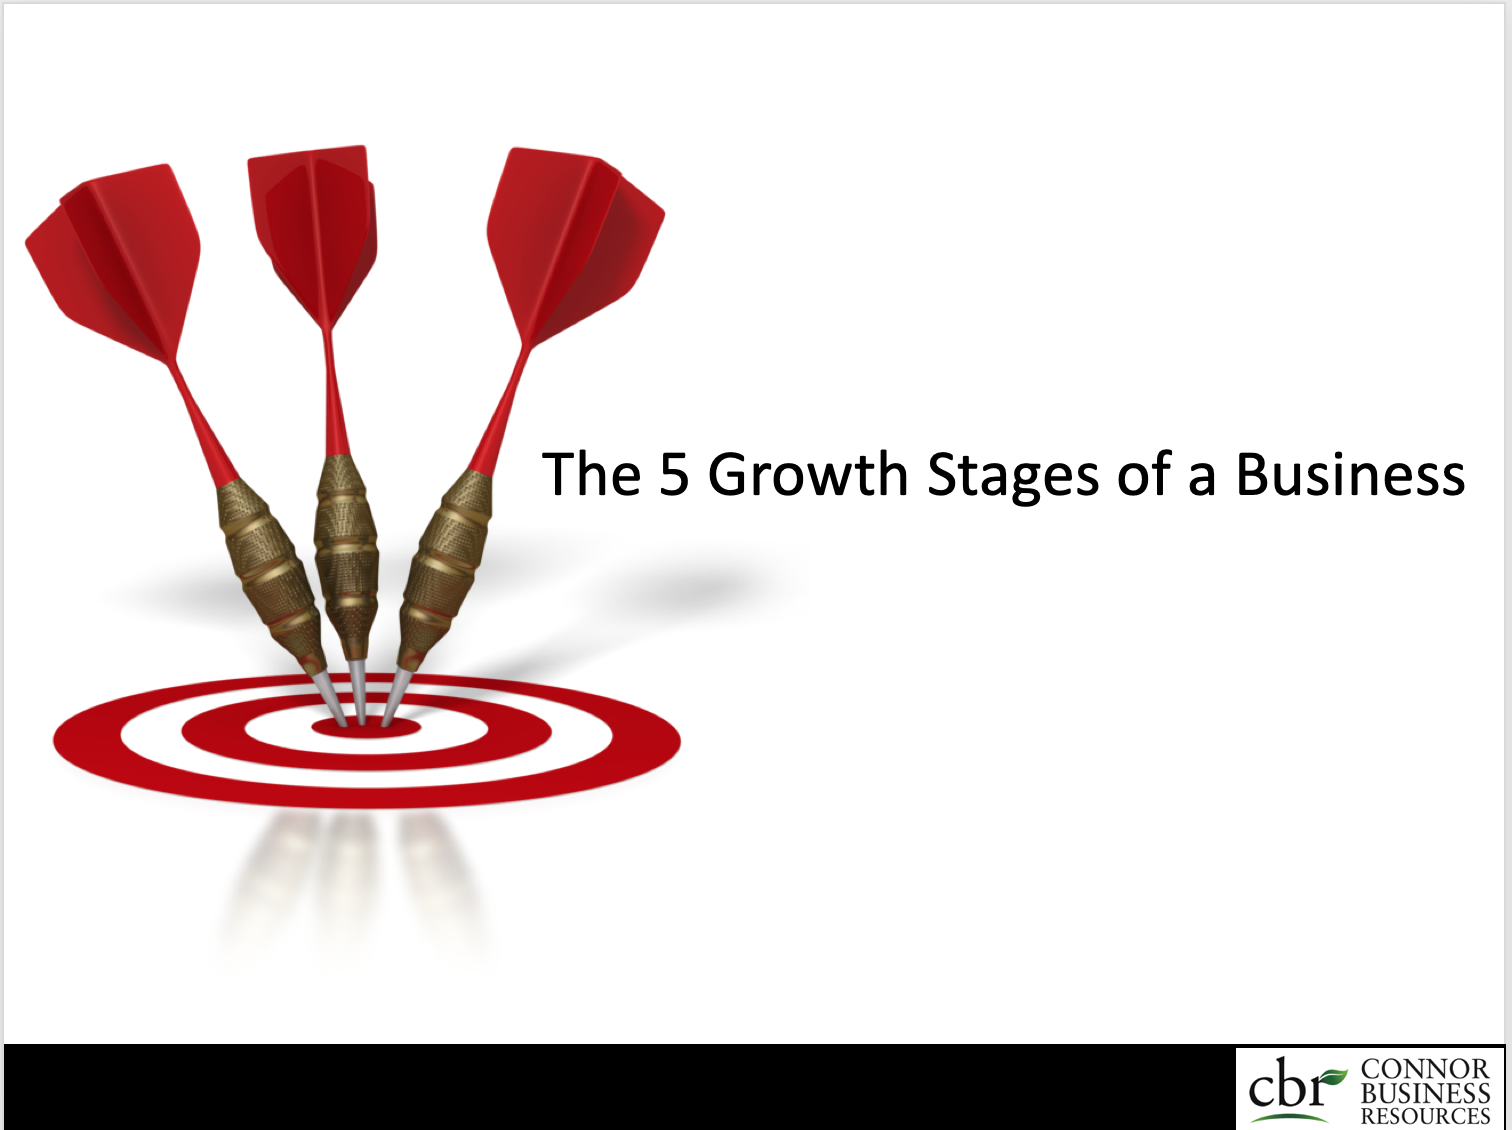 The 5 Growth Stages of a Business